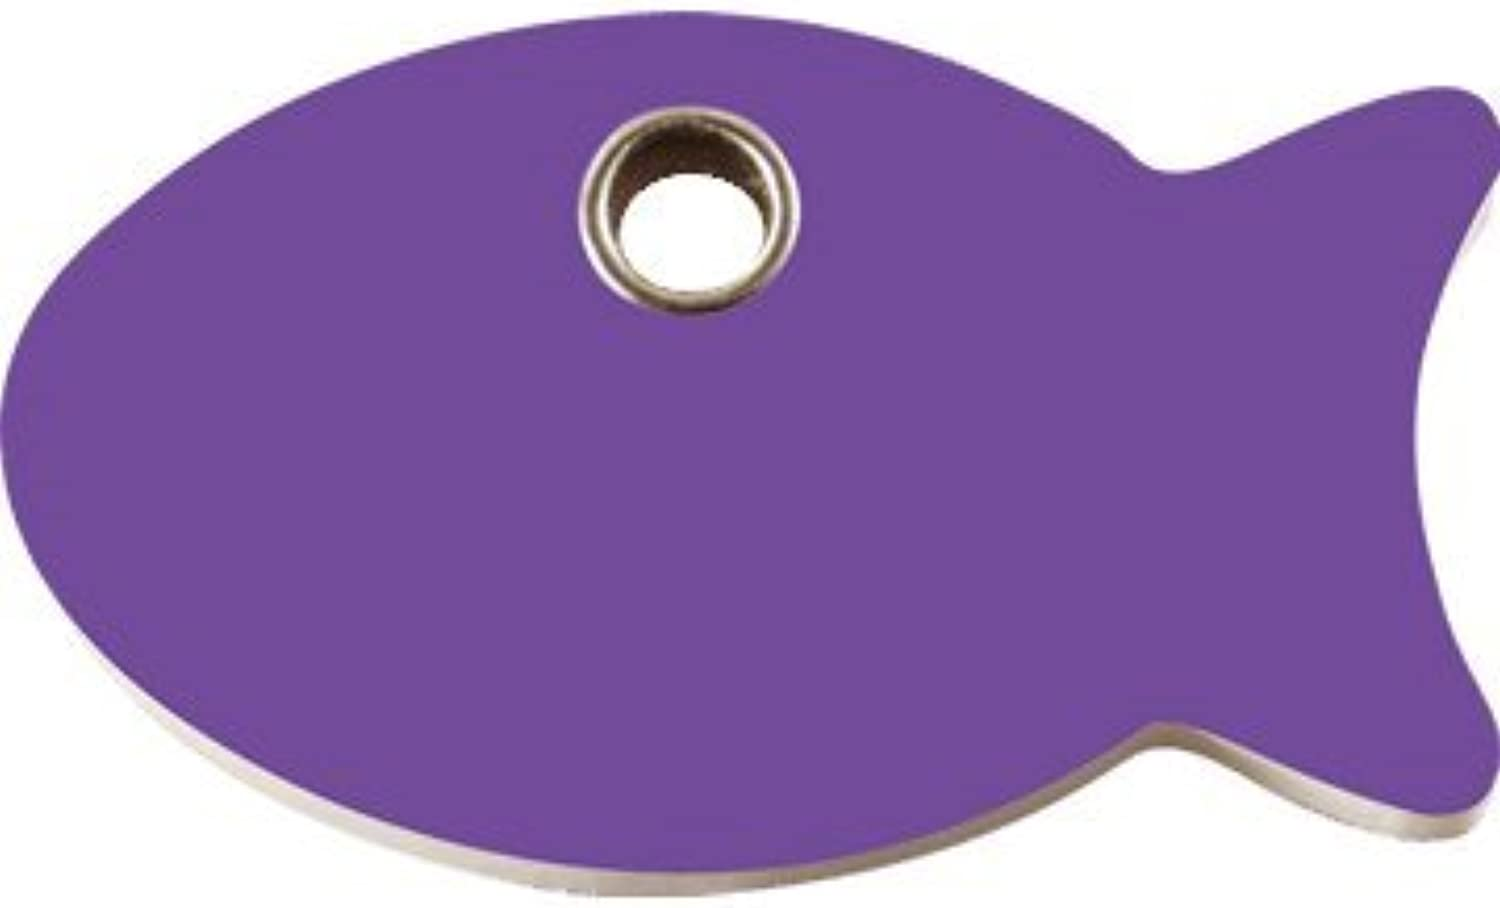 Red Dingo Flat Plastic Engraved Dog ID Tag  Fish Small Purple by Red Dingo